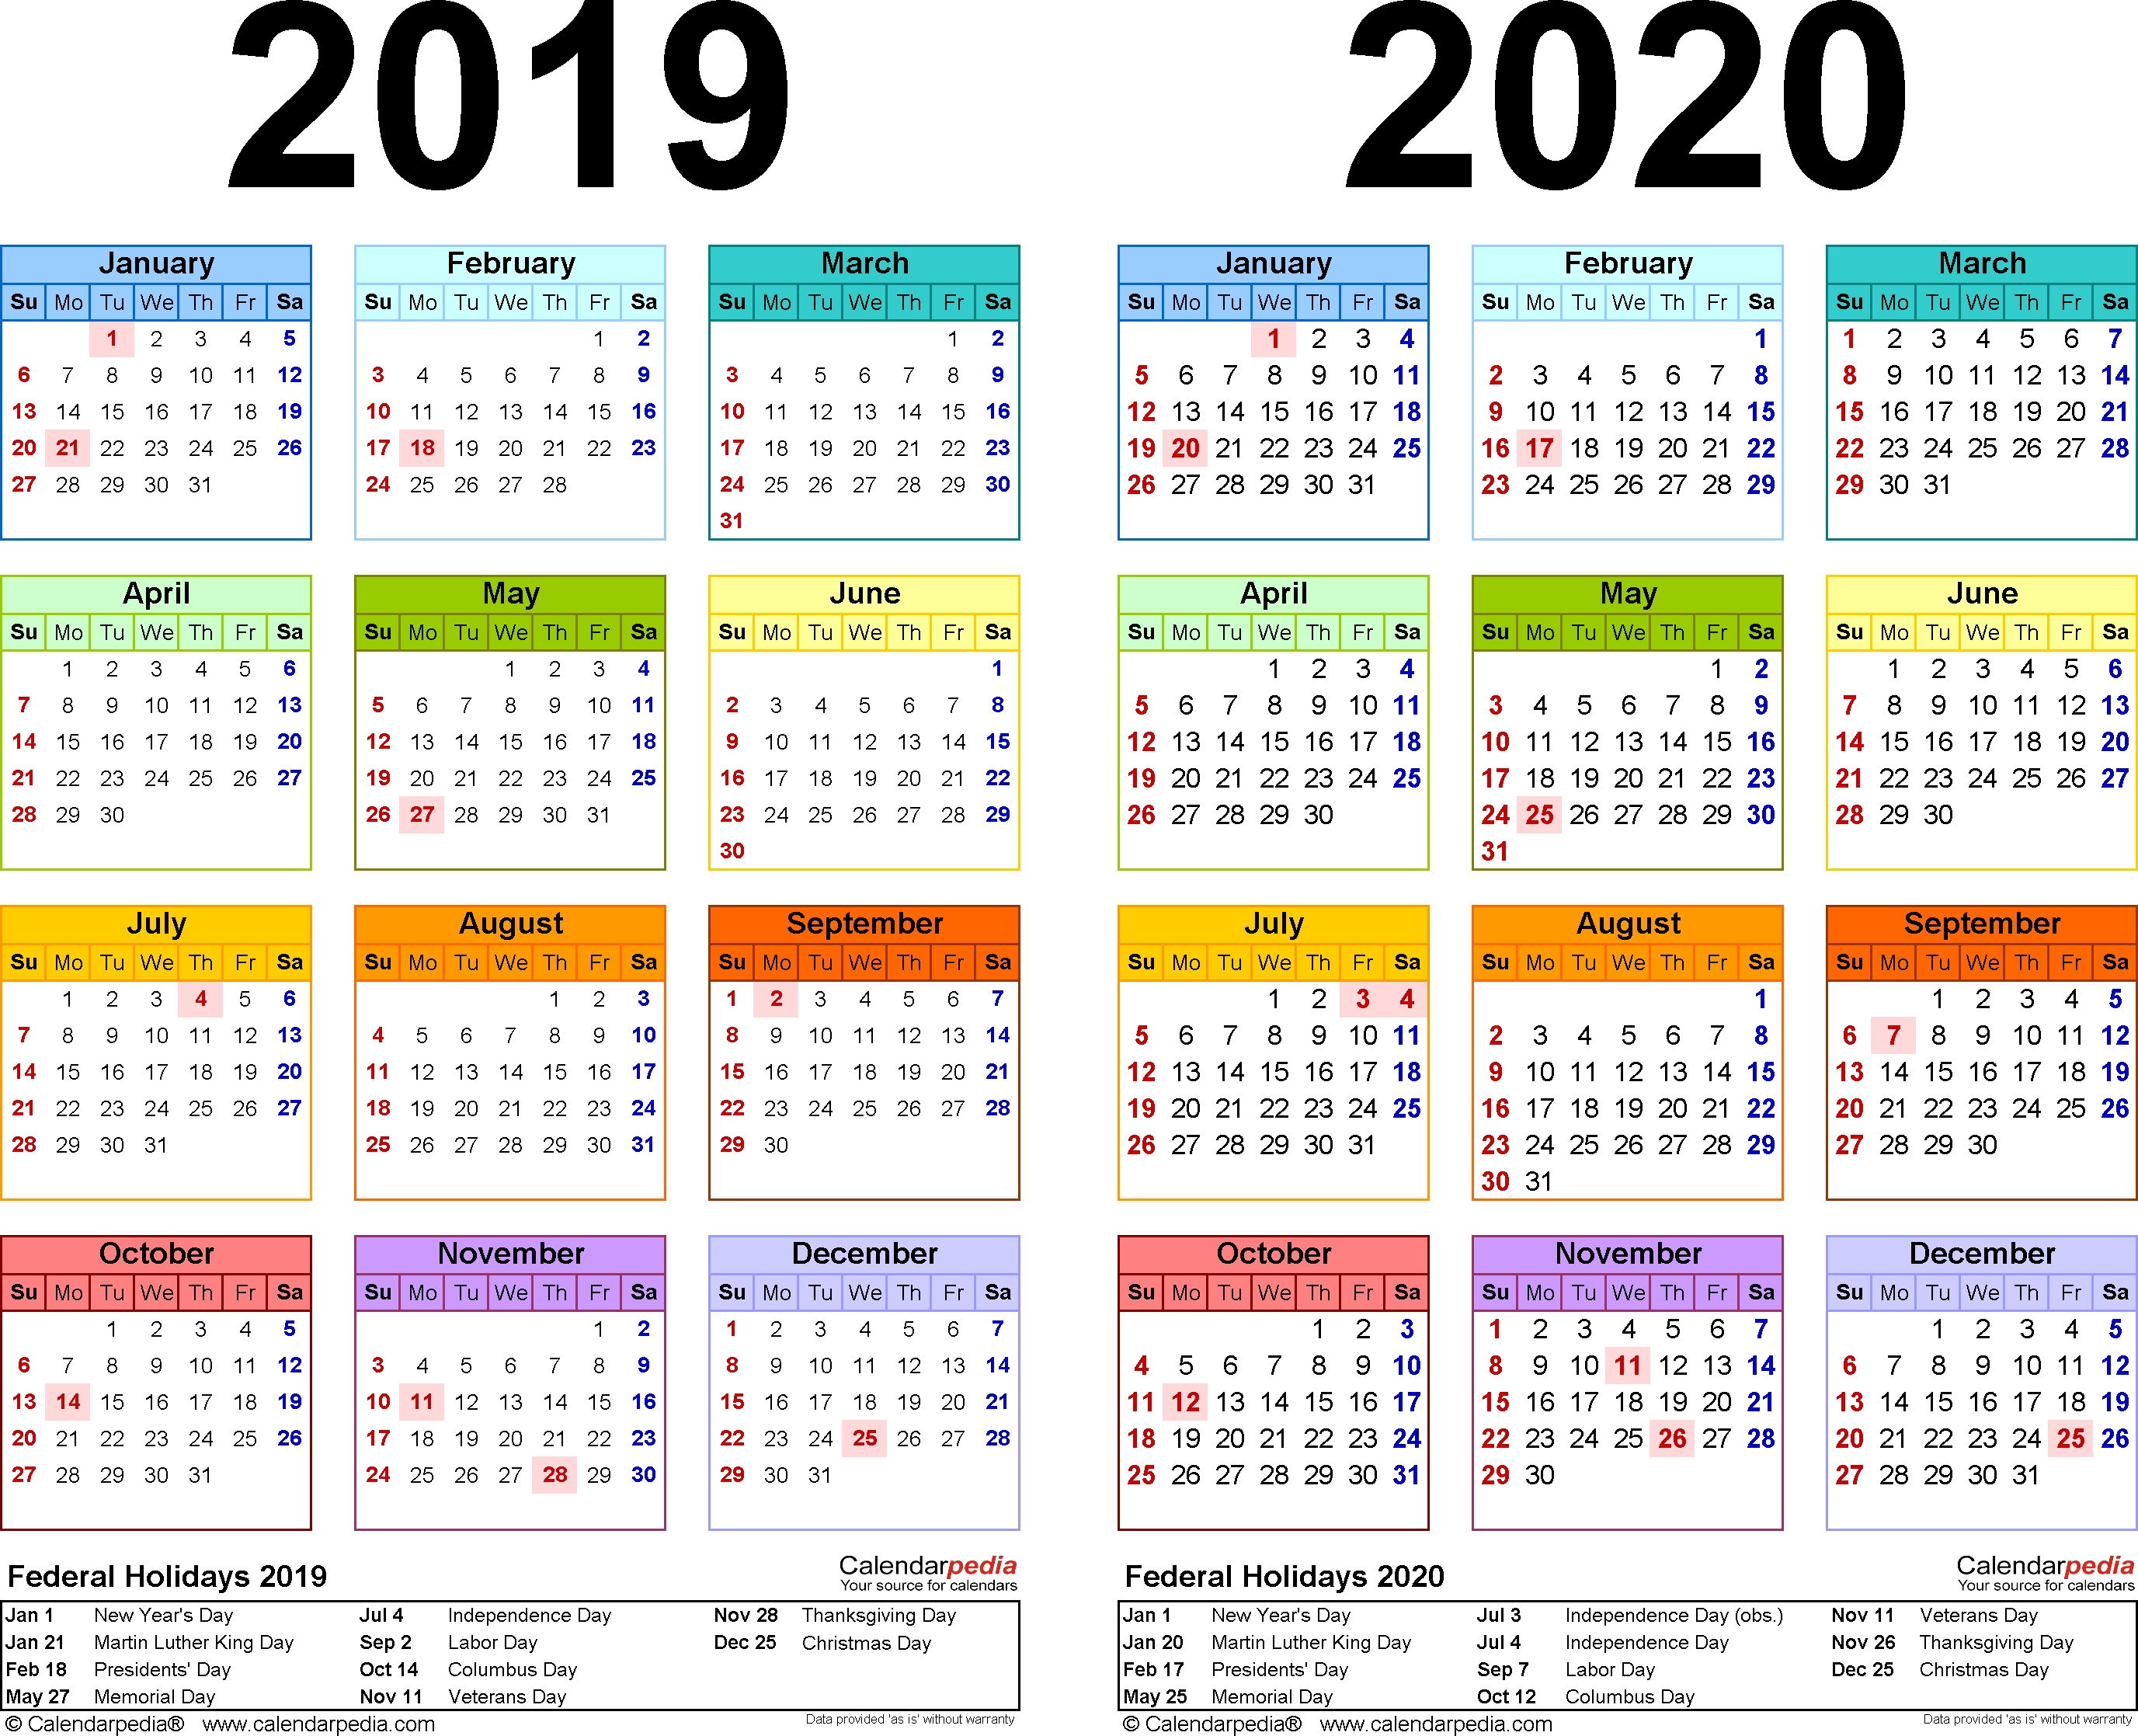 2019-2020 Calendar - Free Printable Two-Year Pdf Calendars regarding 2019-2020 Blank Calendar To Print